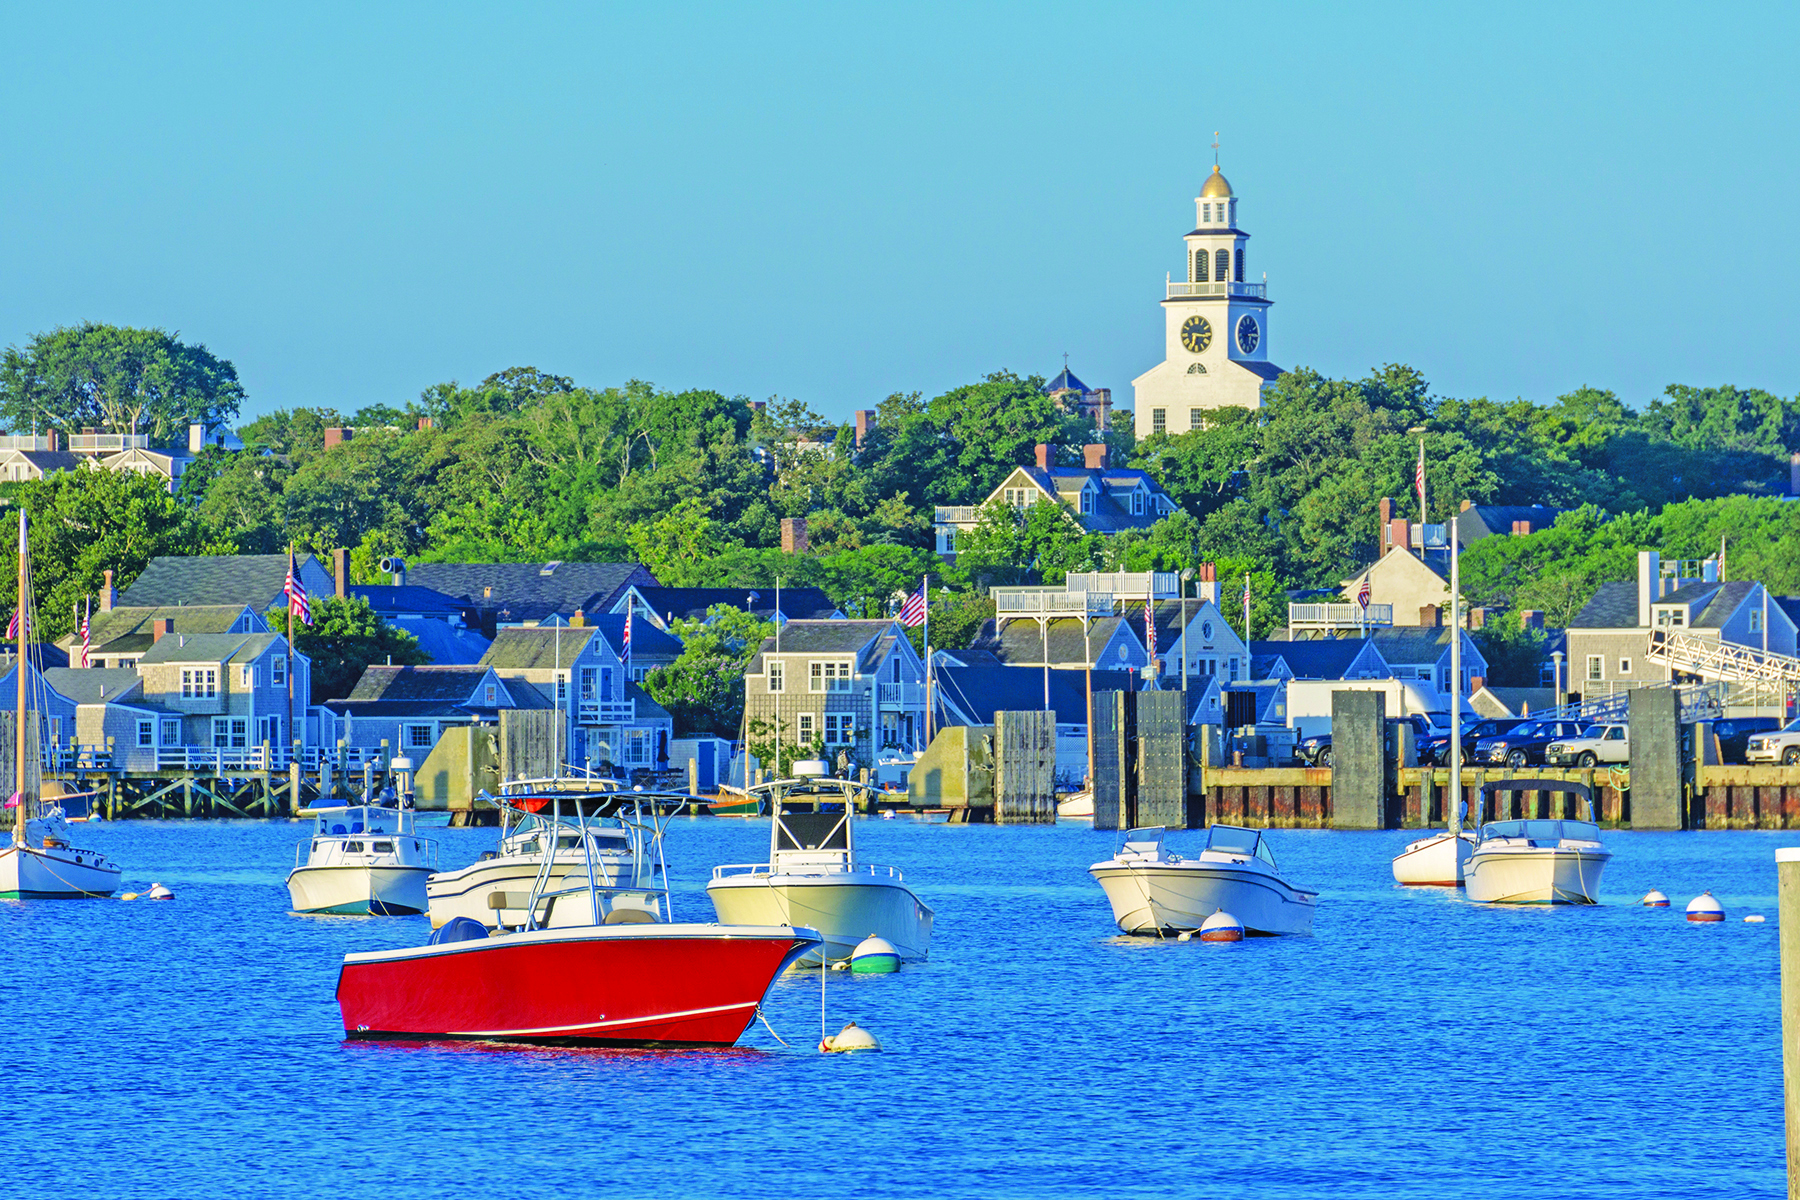 A view of Nantucket Island from the water on a cloudless day